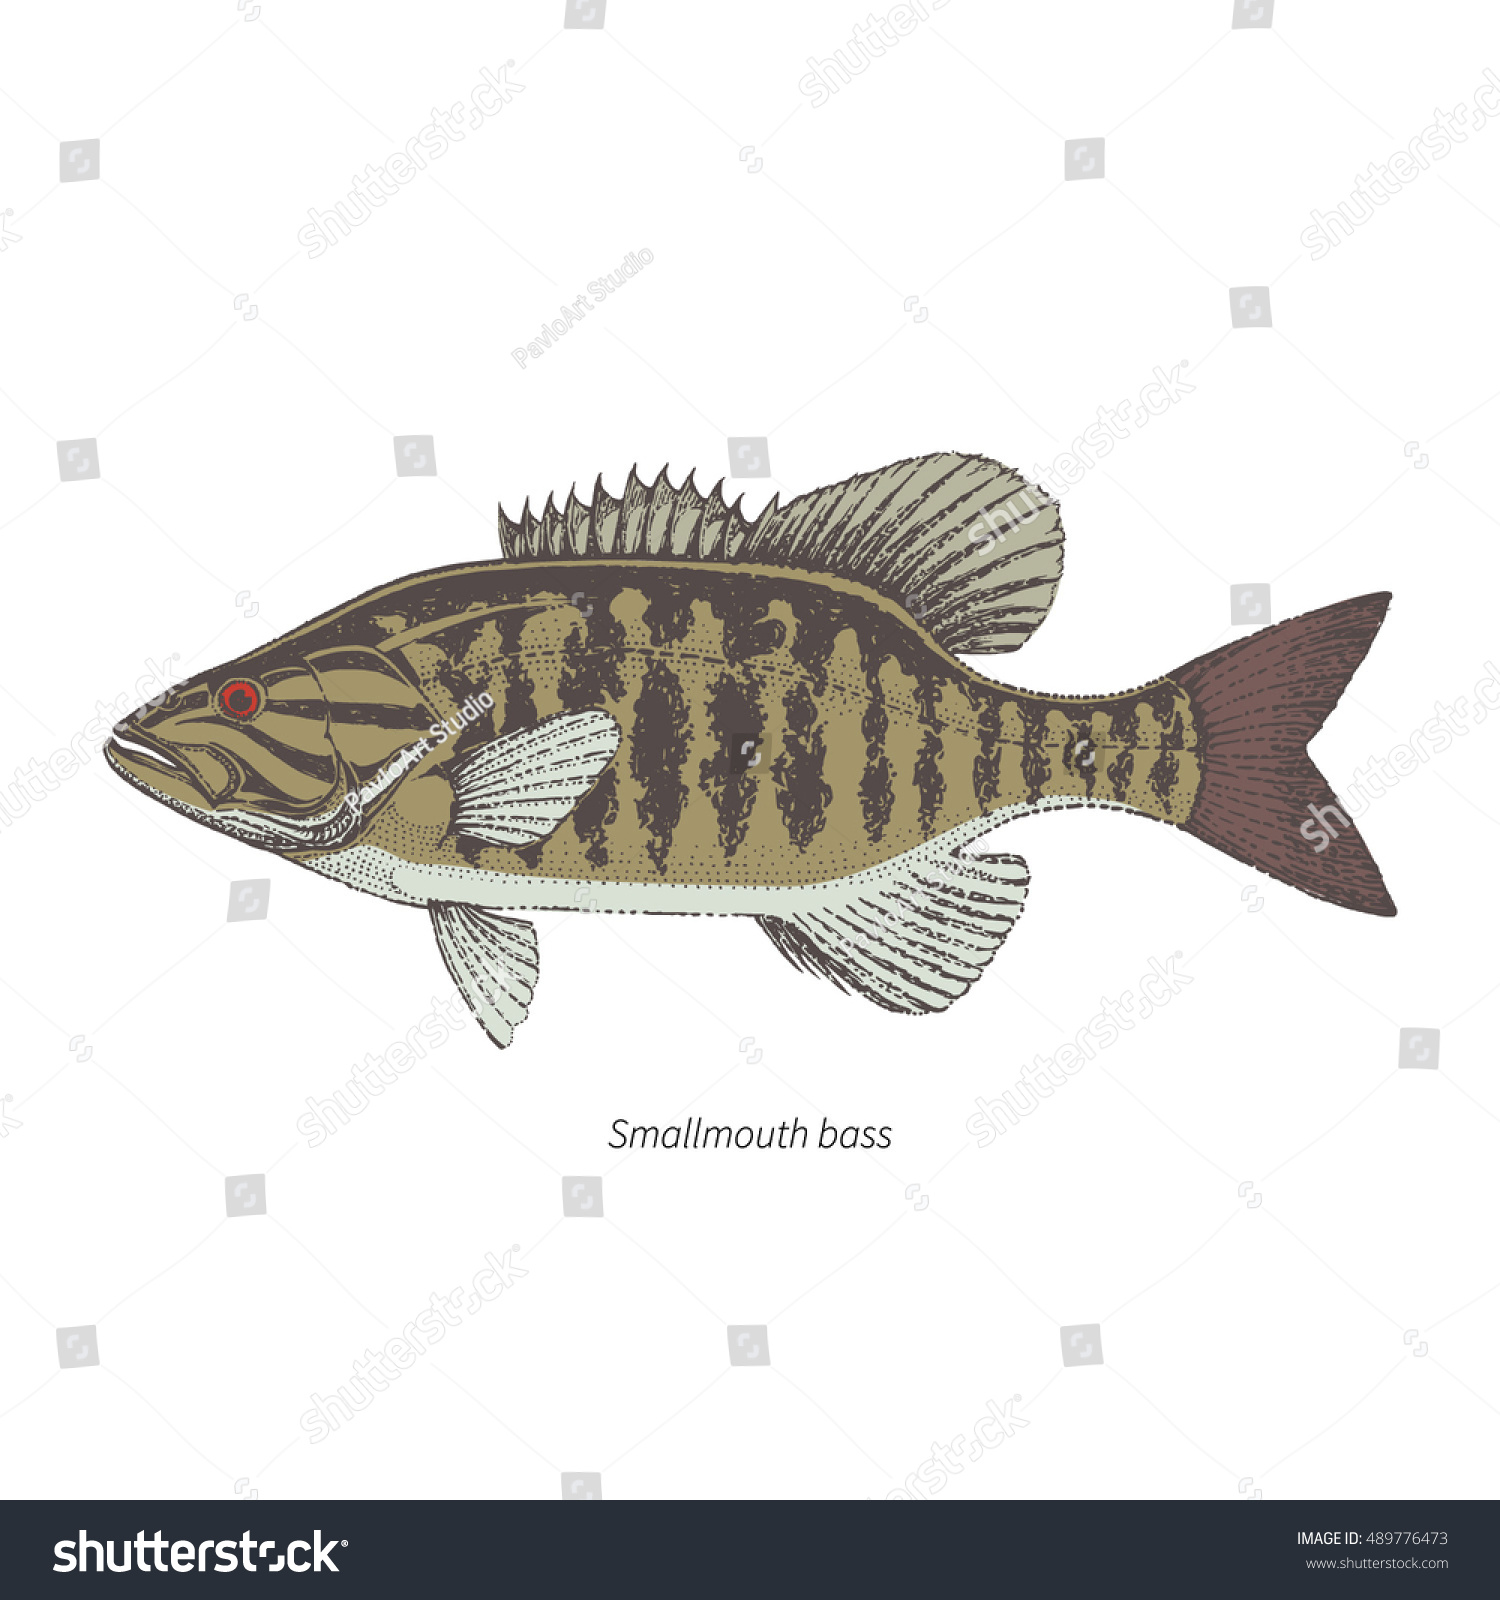 Smallmouth Bass Hand Drawn Outline Color Vintage Vector Illustration Isolated On White Background